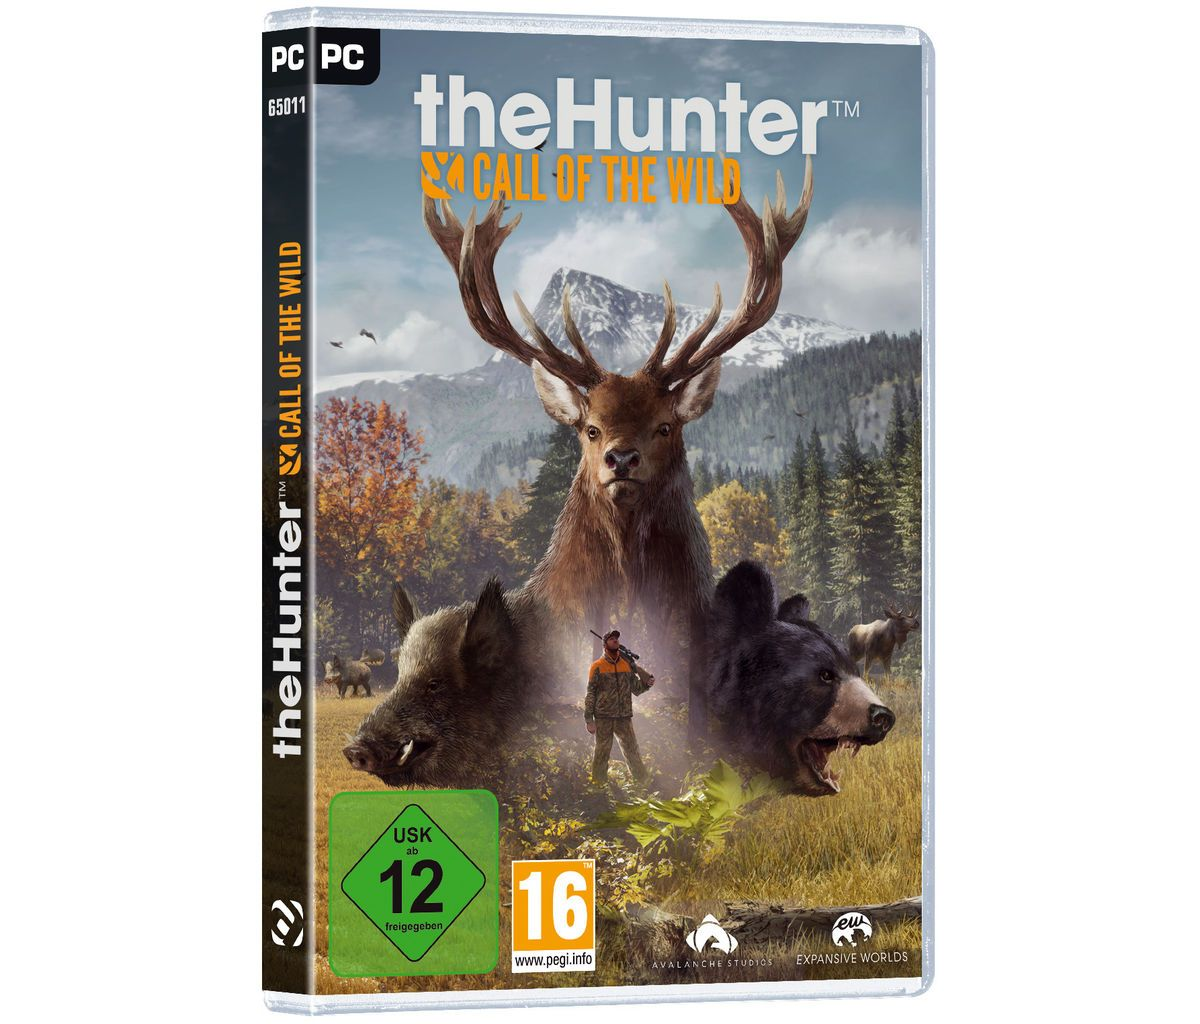 Astragon PC - Spiel »theHunter: Call of the Wild«